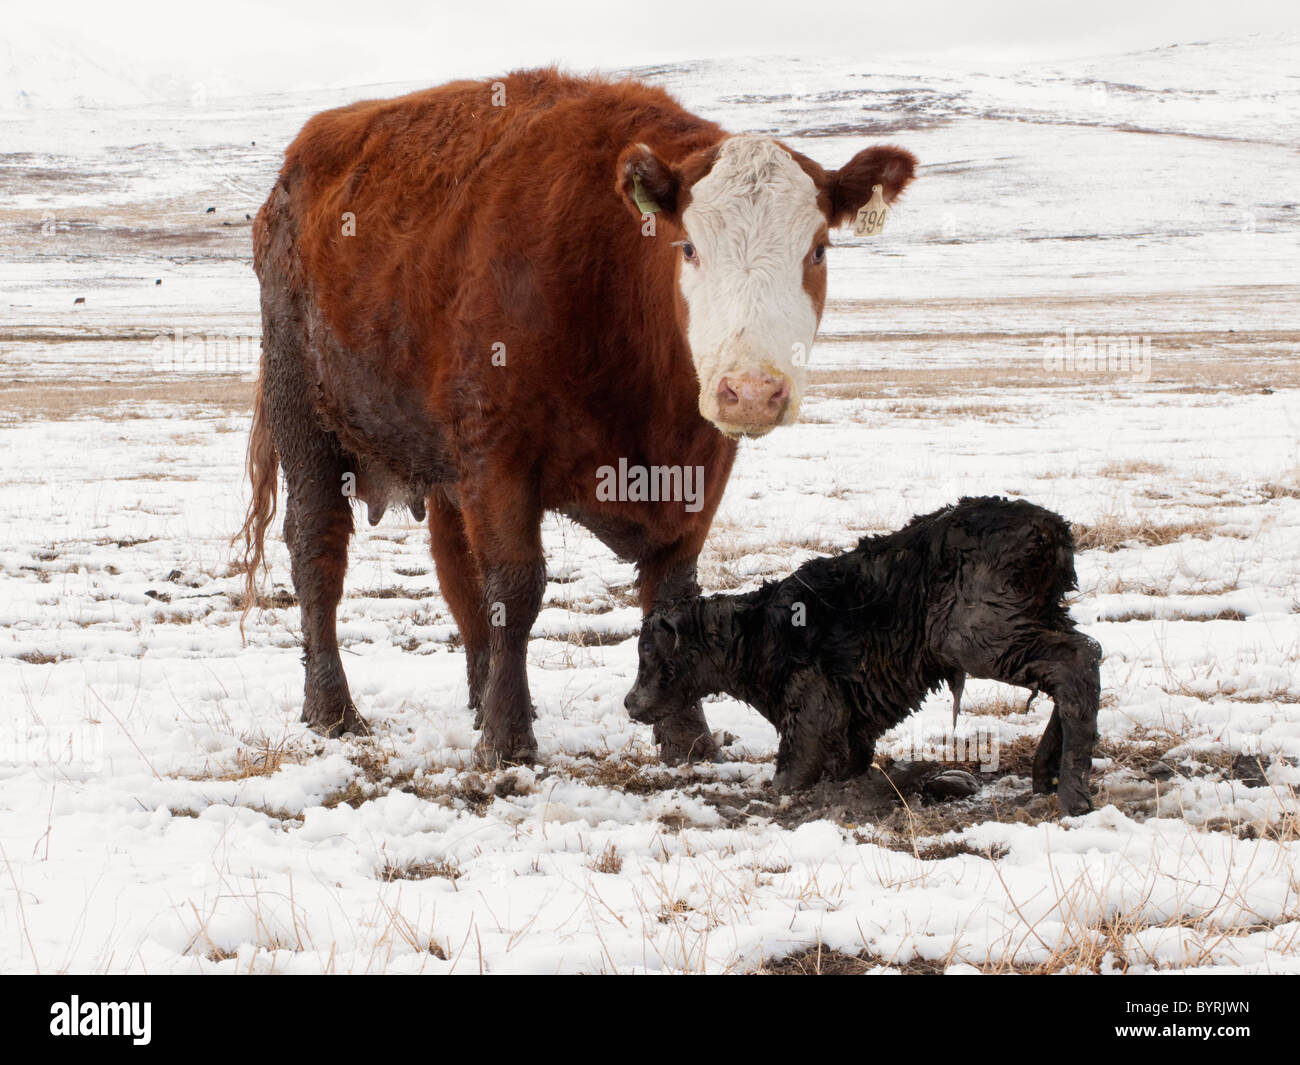 A Hereford cross cow stands over her newborn calf as it struggles to stand for the first time on a snow covered - Stock Image